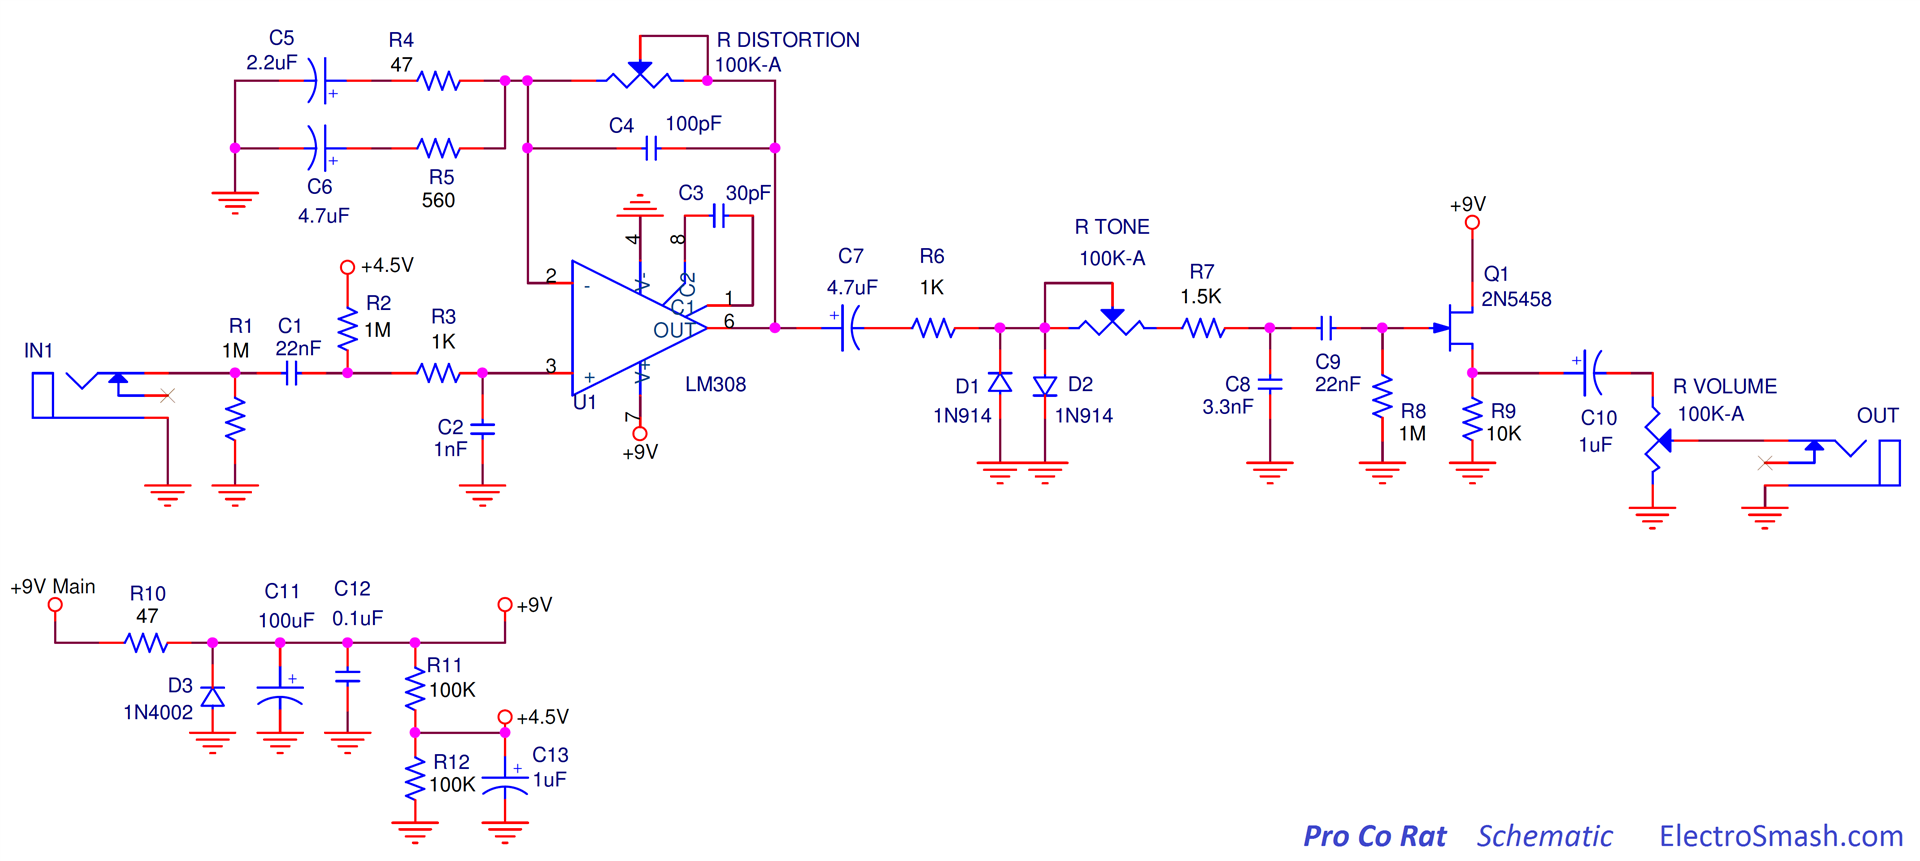 pro co rat schematic electrosmash proco rat wiring diagram at gsmx.co